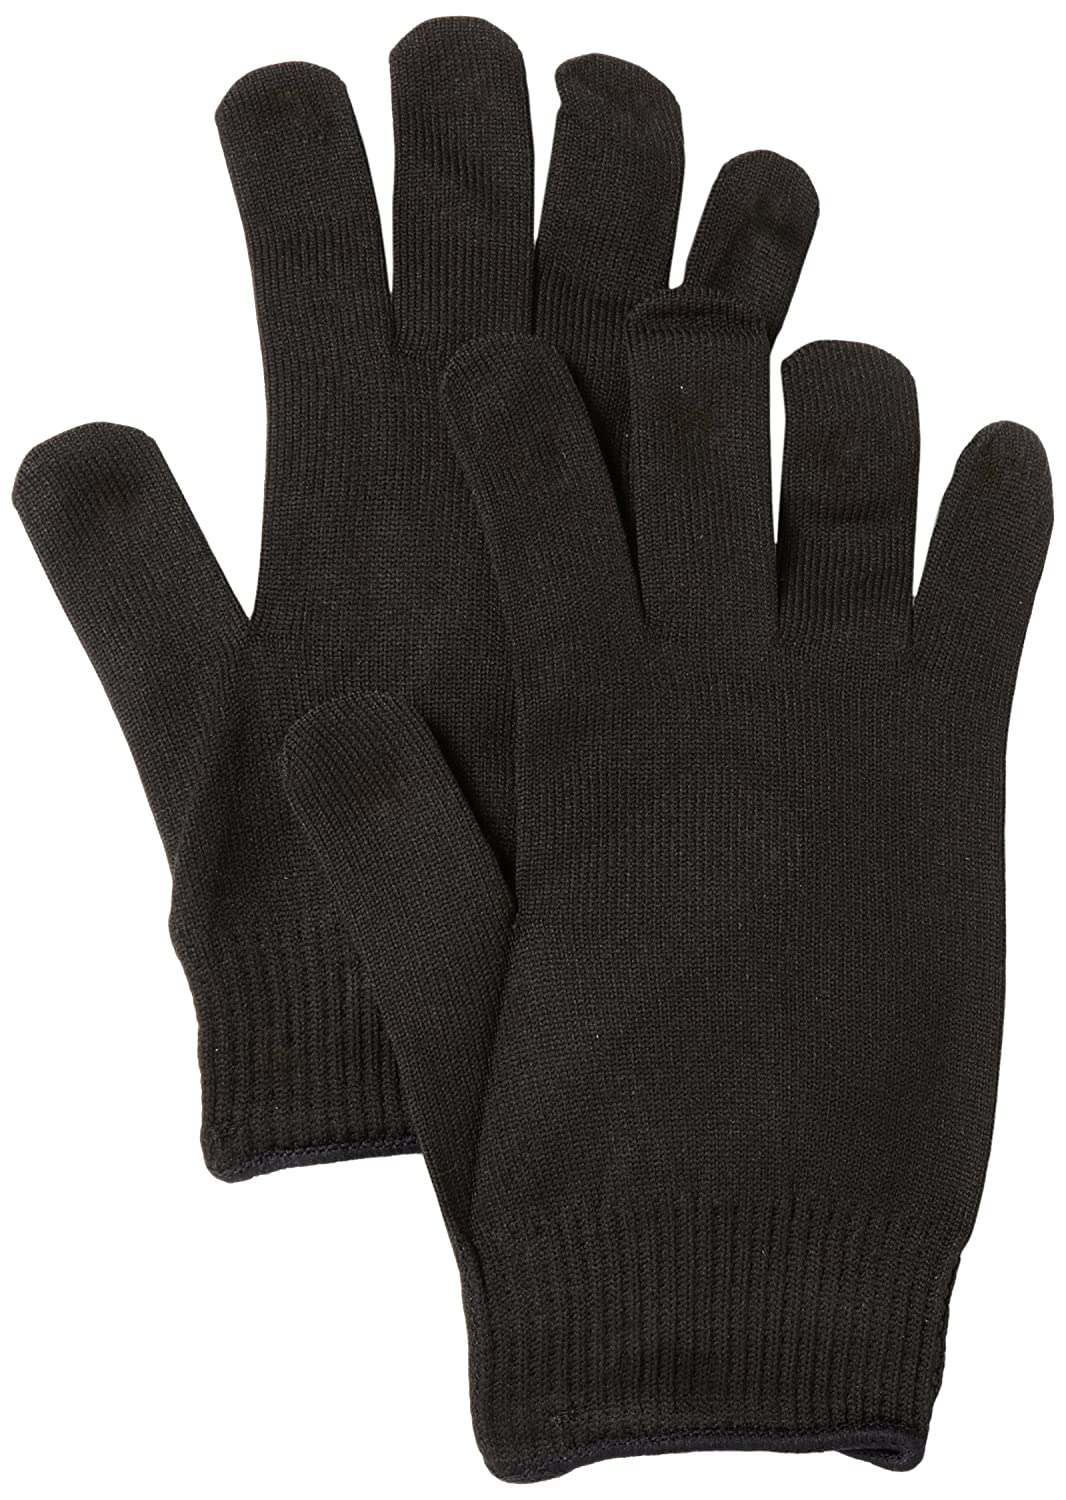 Fox River Men's Polypropylene Glove Liner Fox River Mills Inc. FR-9992